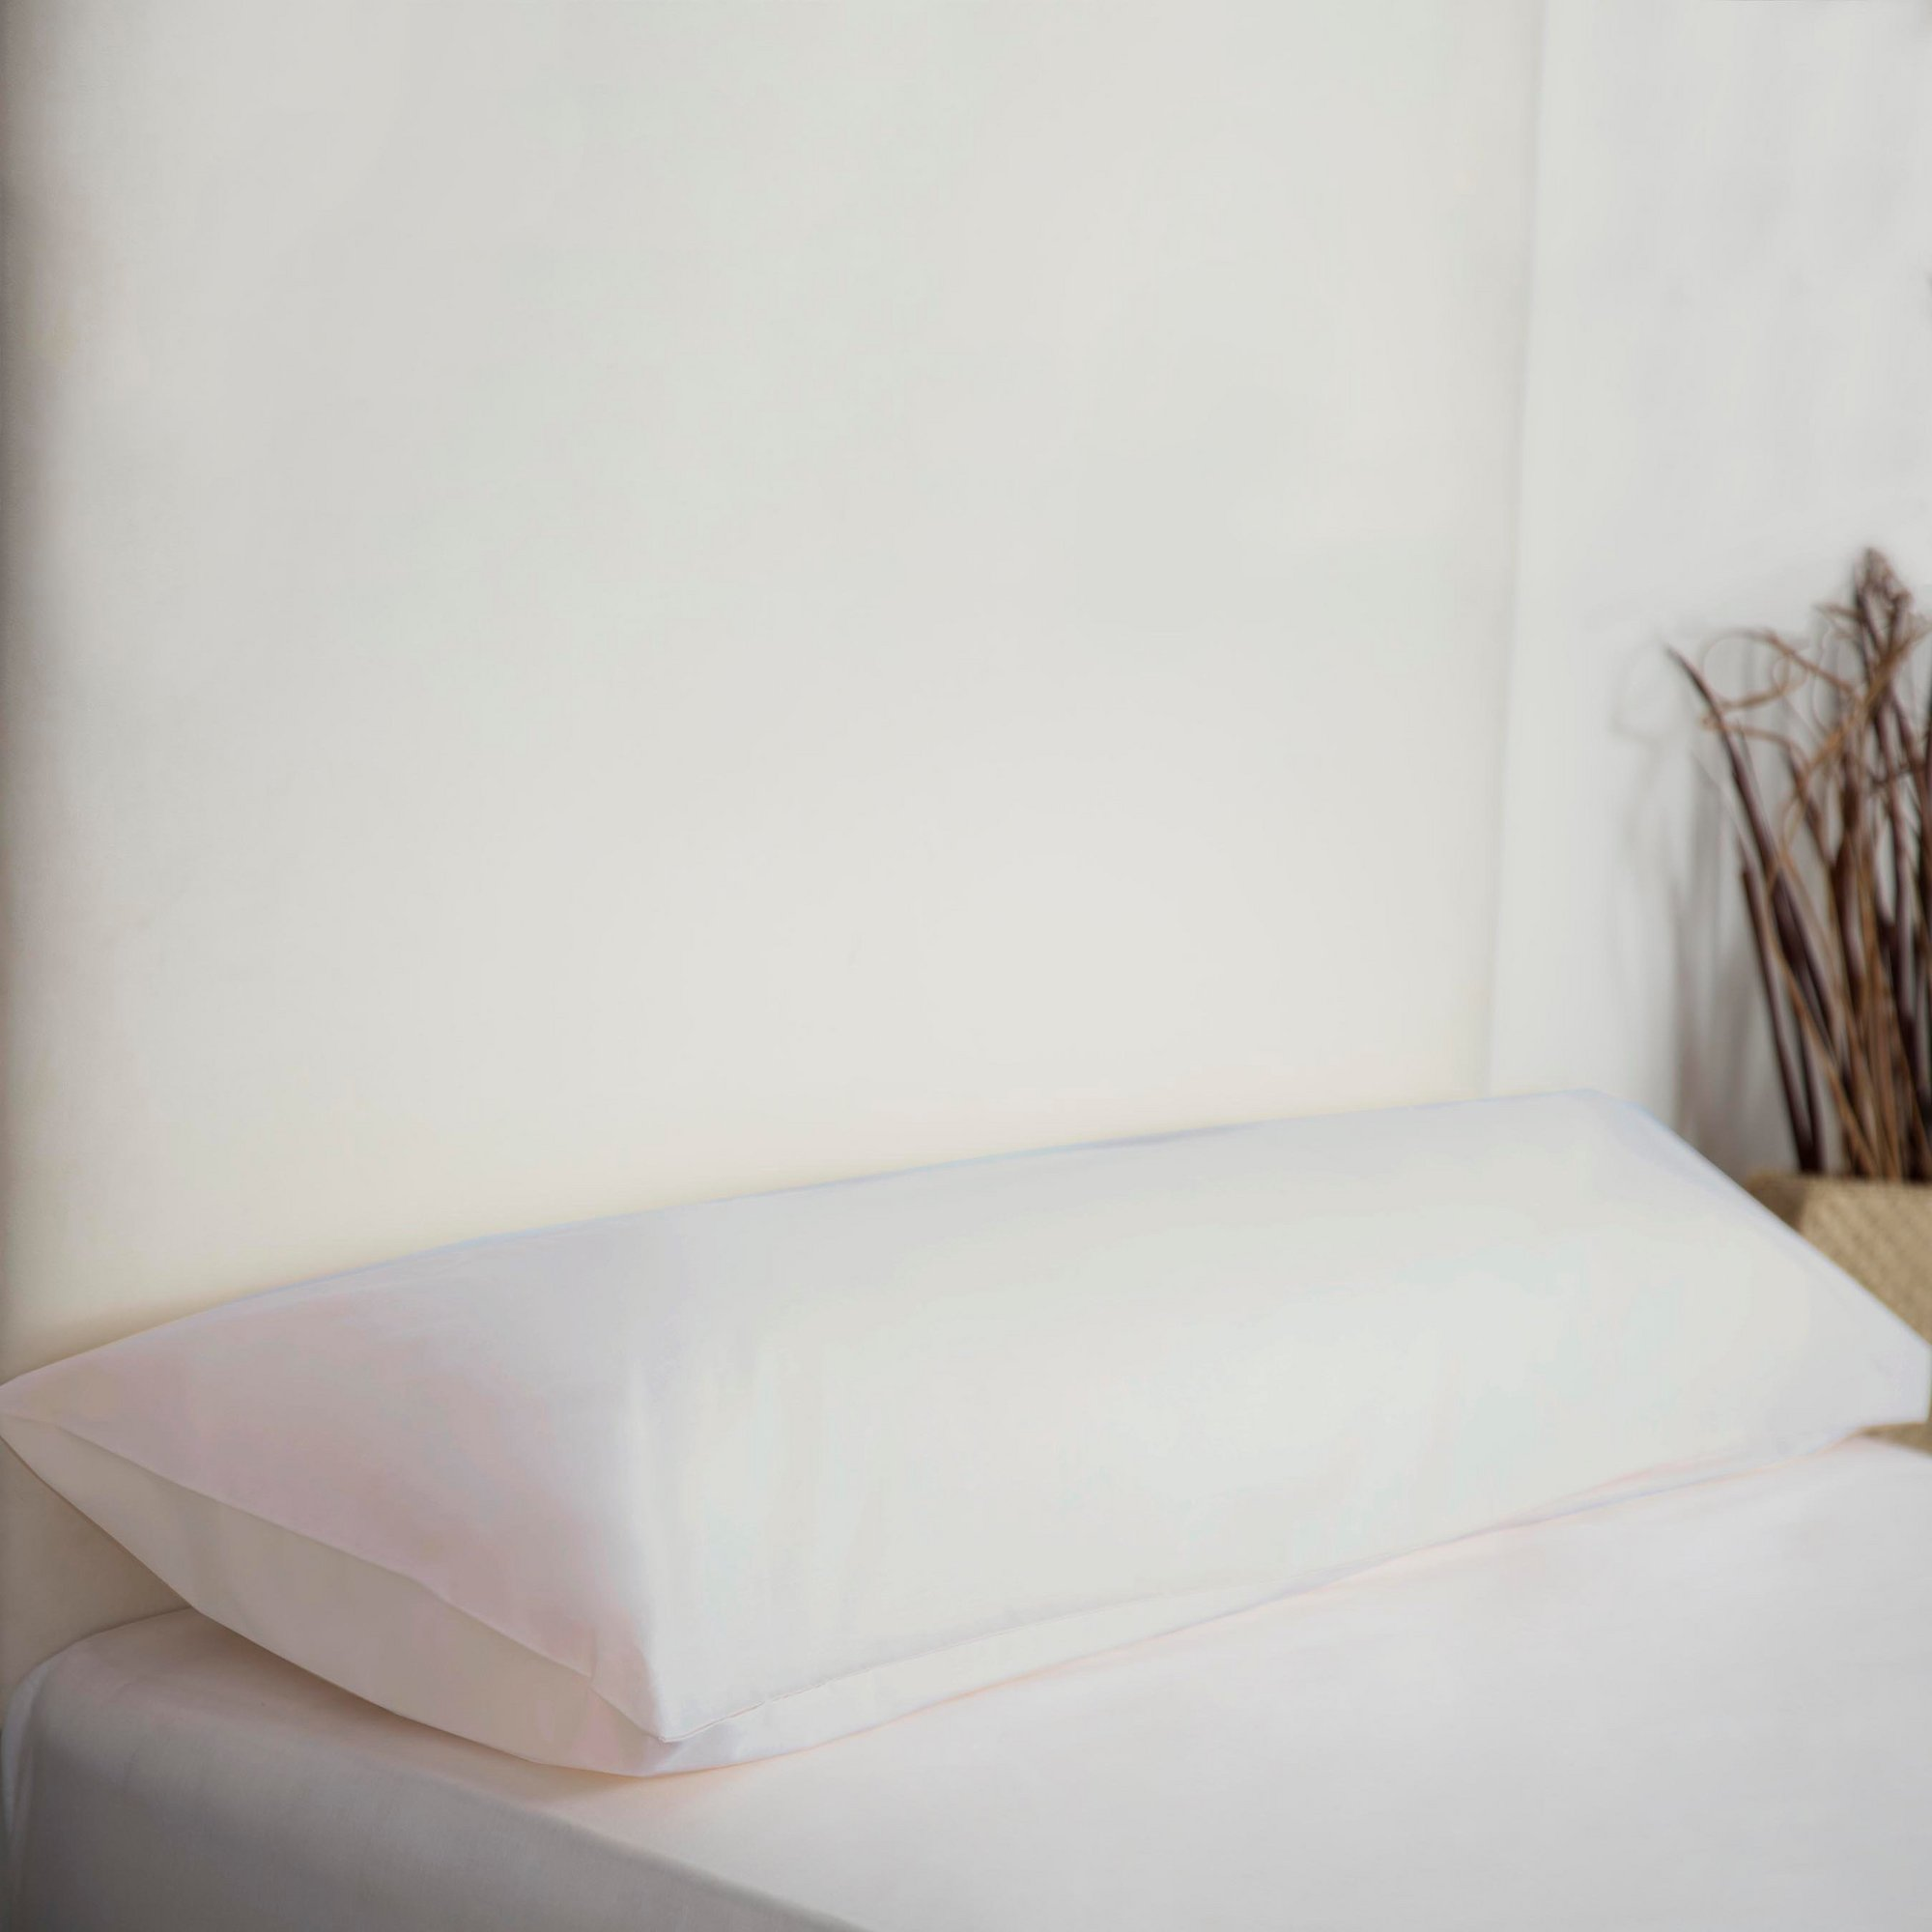 Image of 200 Count Percale Bolster Pillowcases